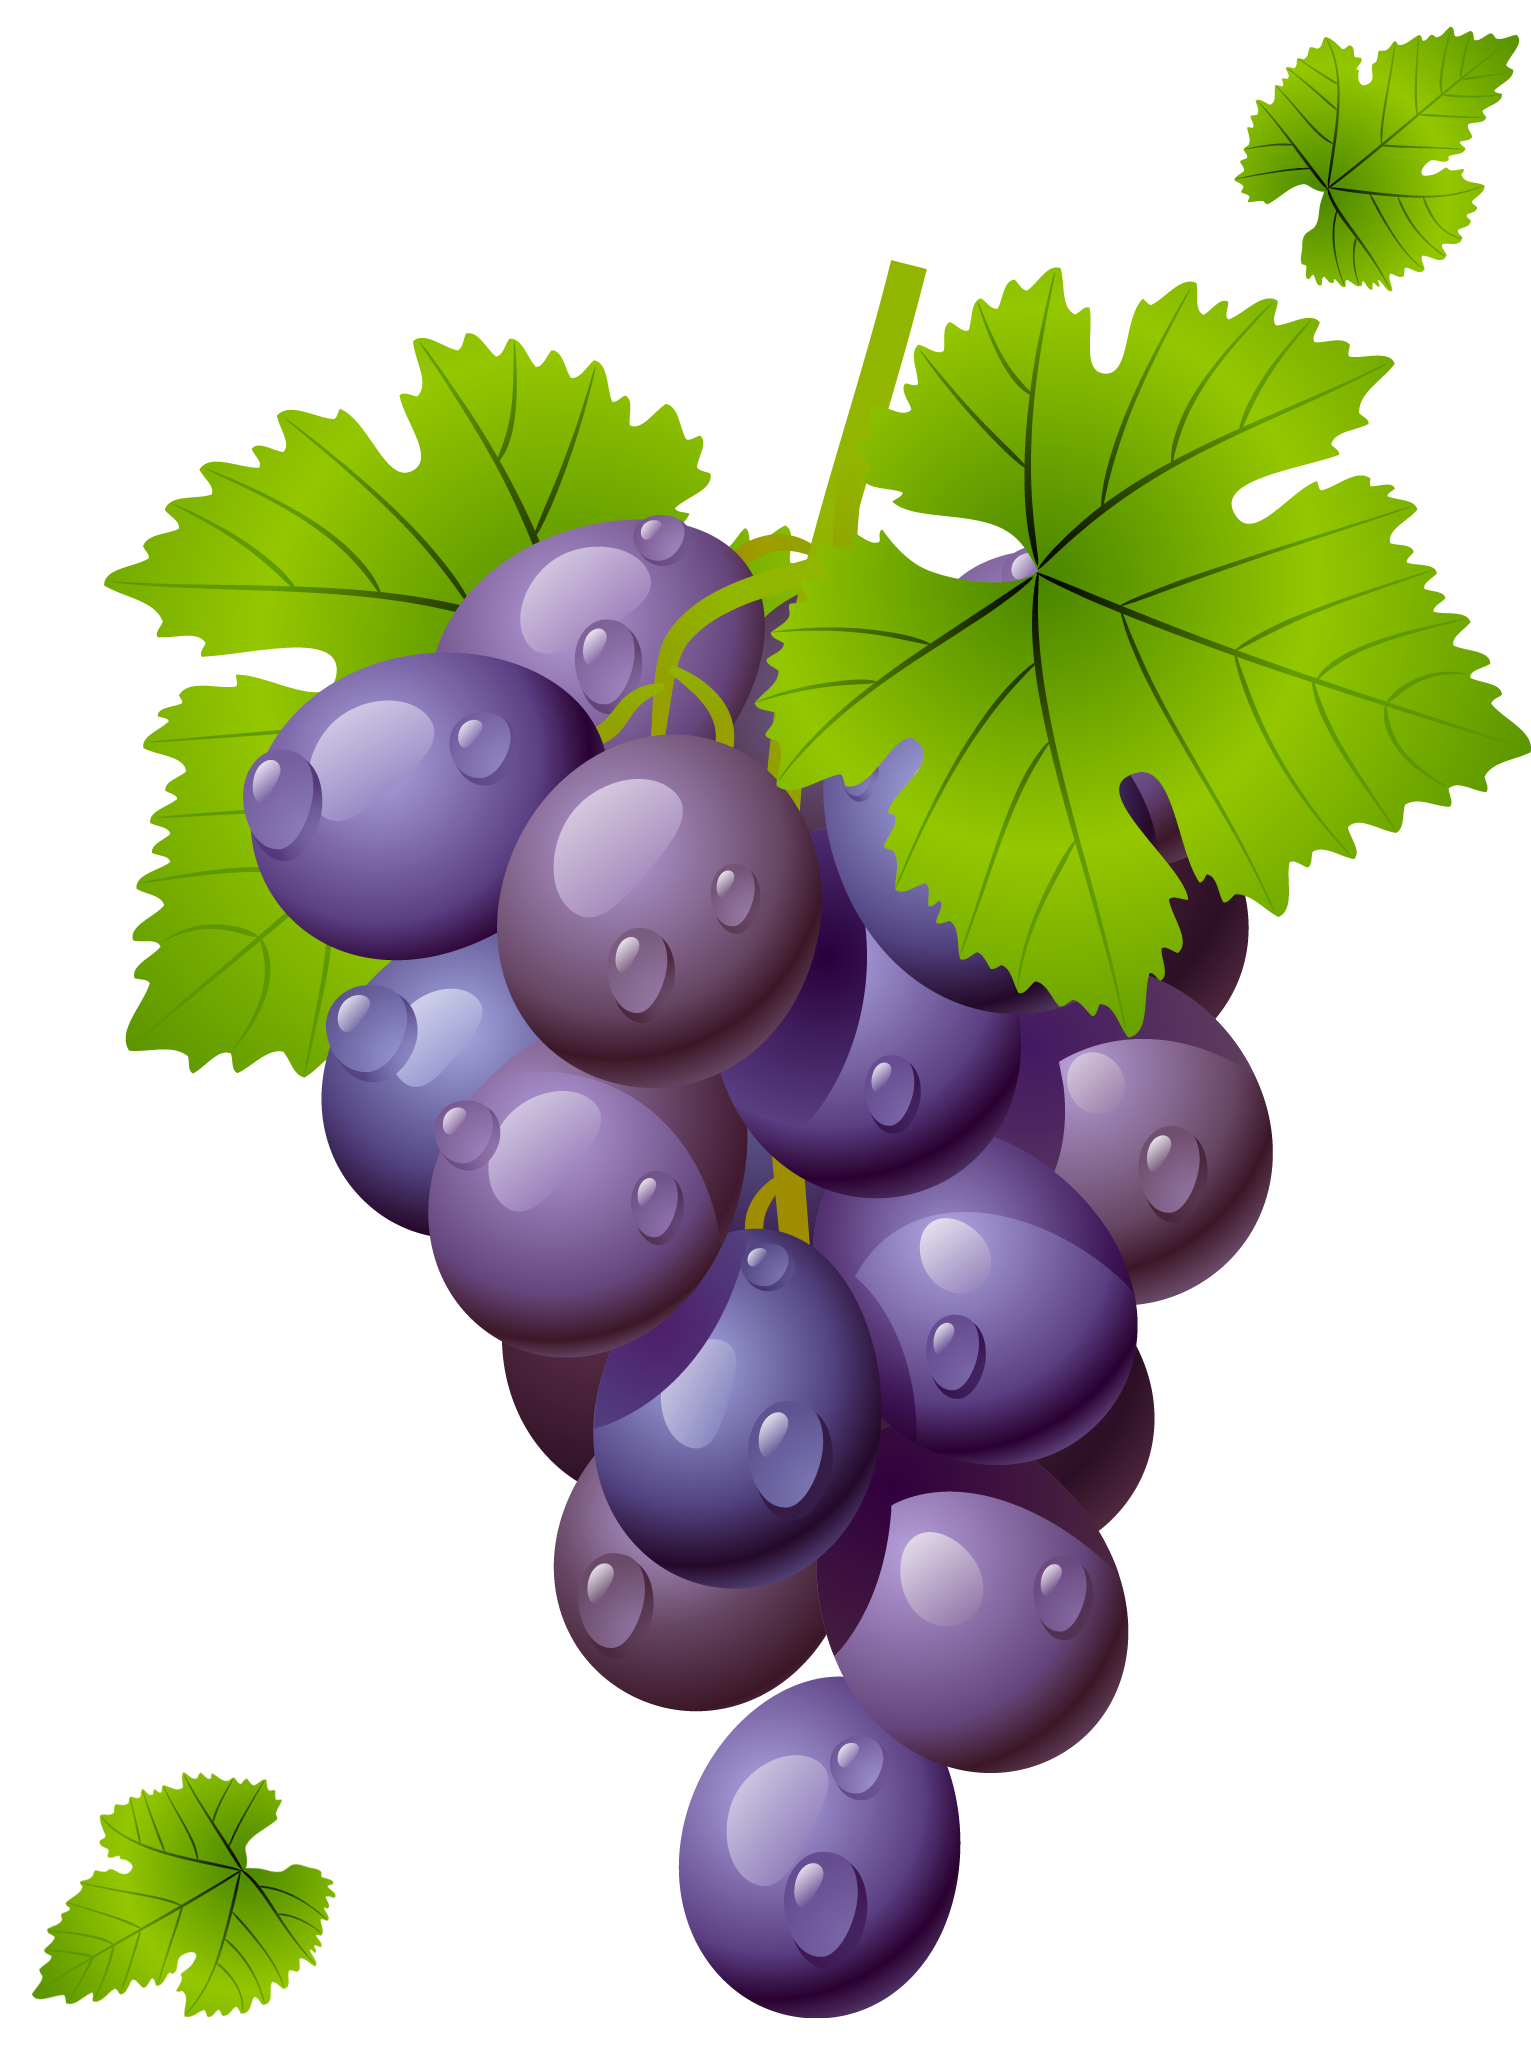 grapes, grape with leaves png clipart picture #17060